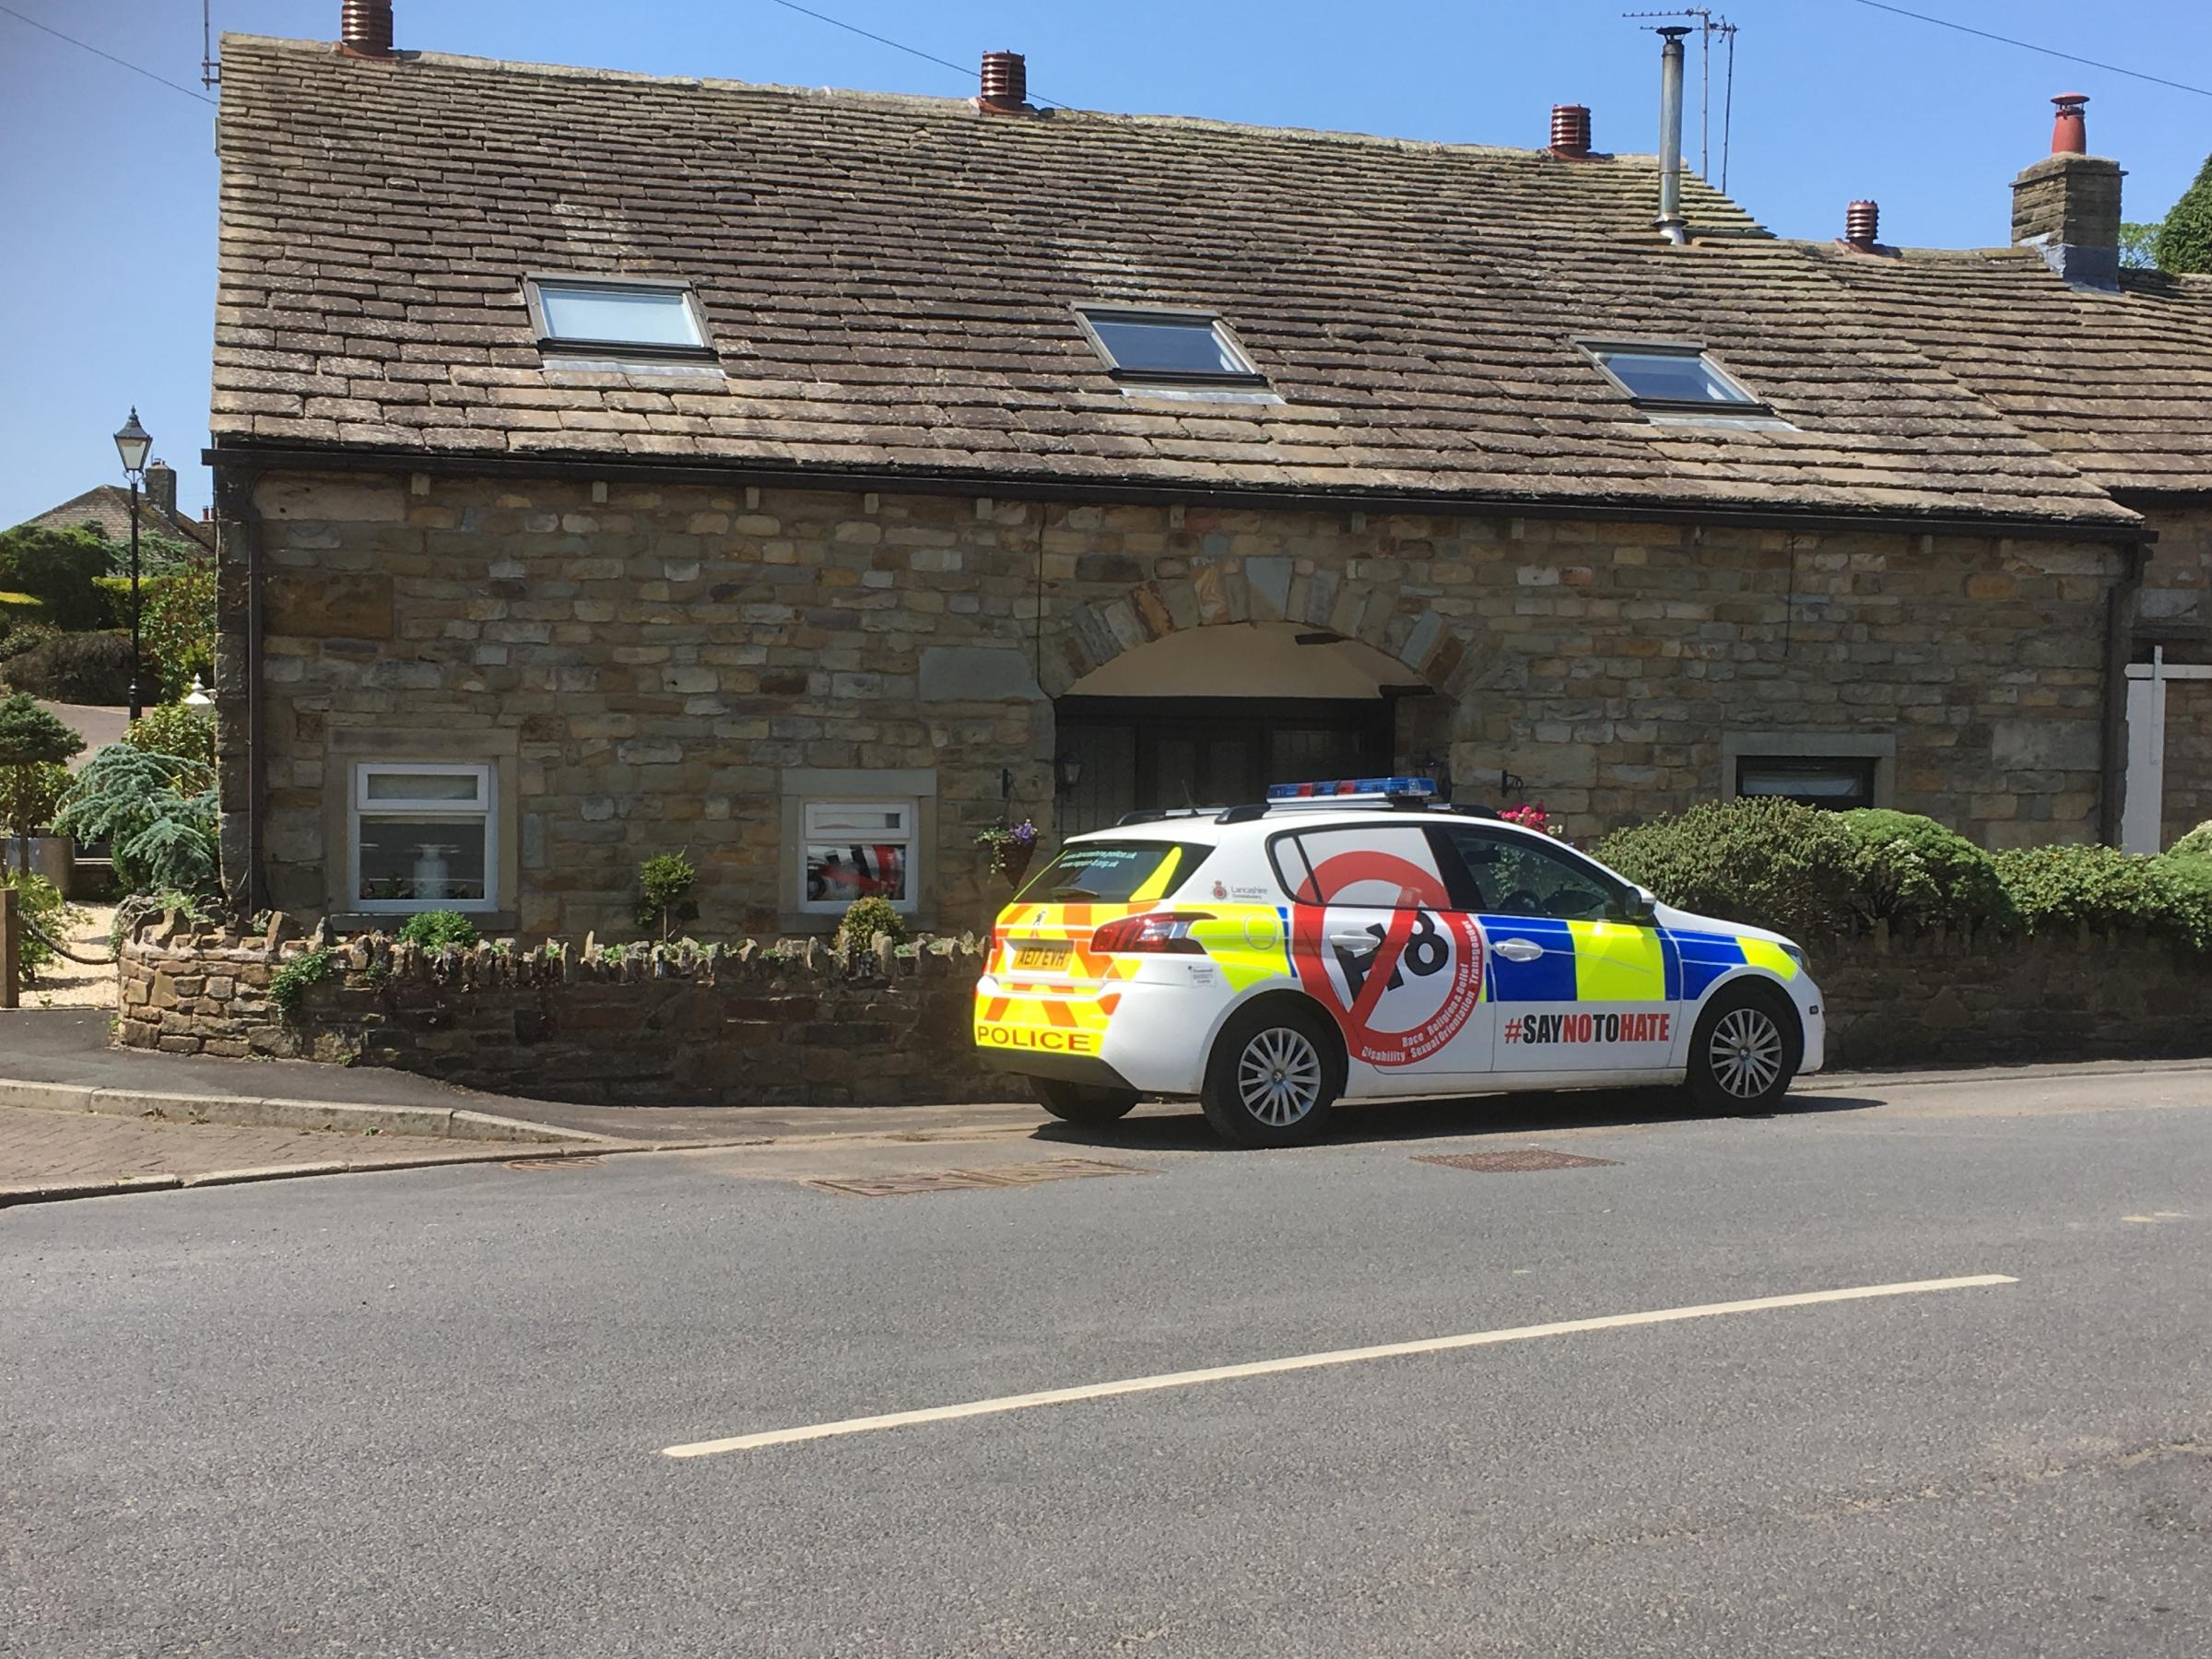 Emergency services were called to an address in Stoneycroft, Worsthorne, following reports a six-week-old baby had been found unconscious